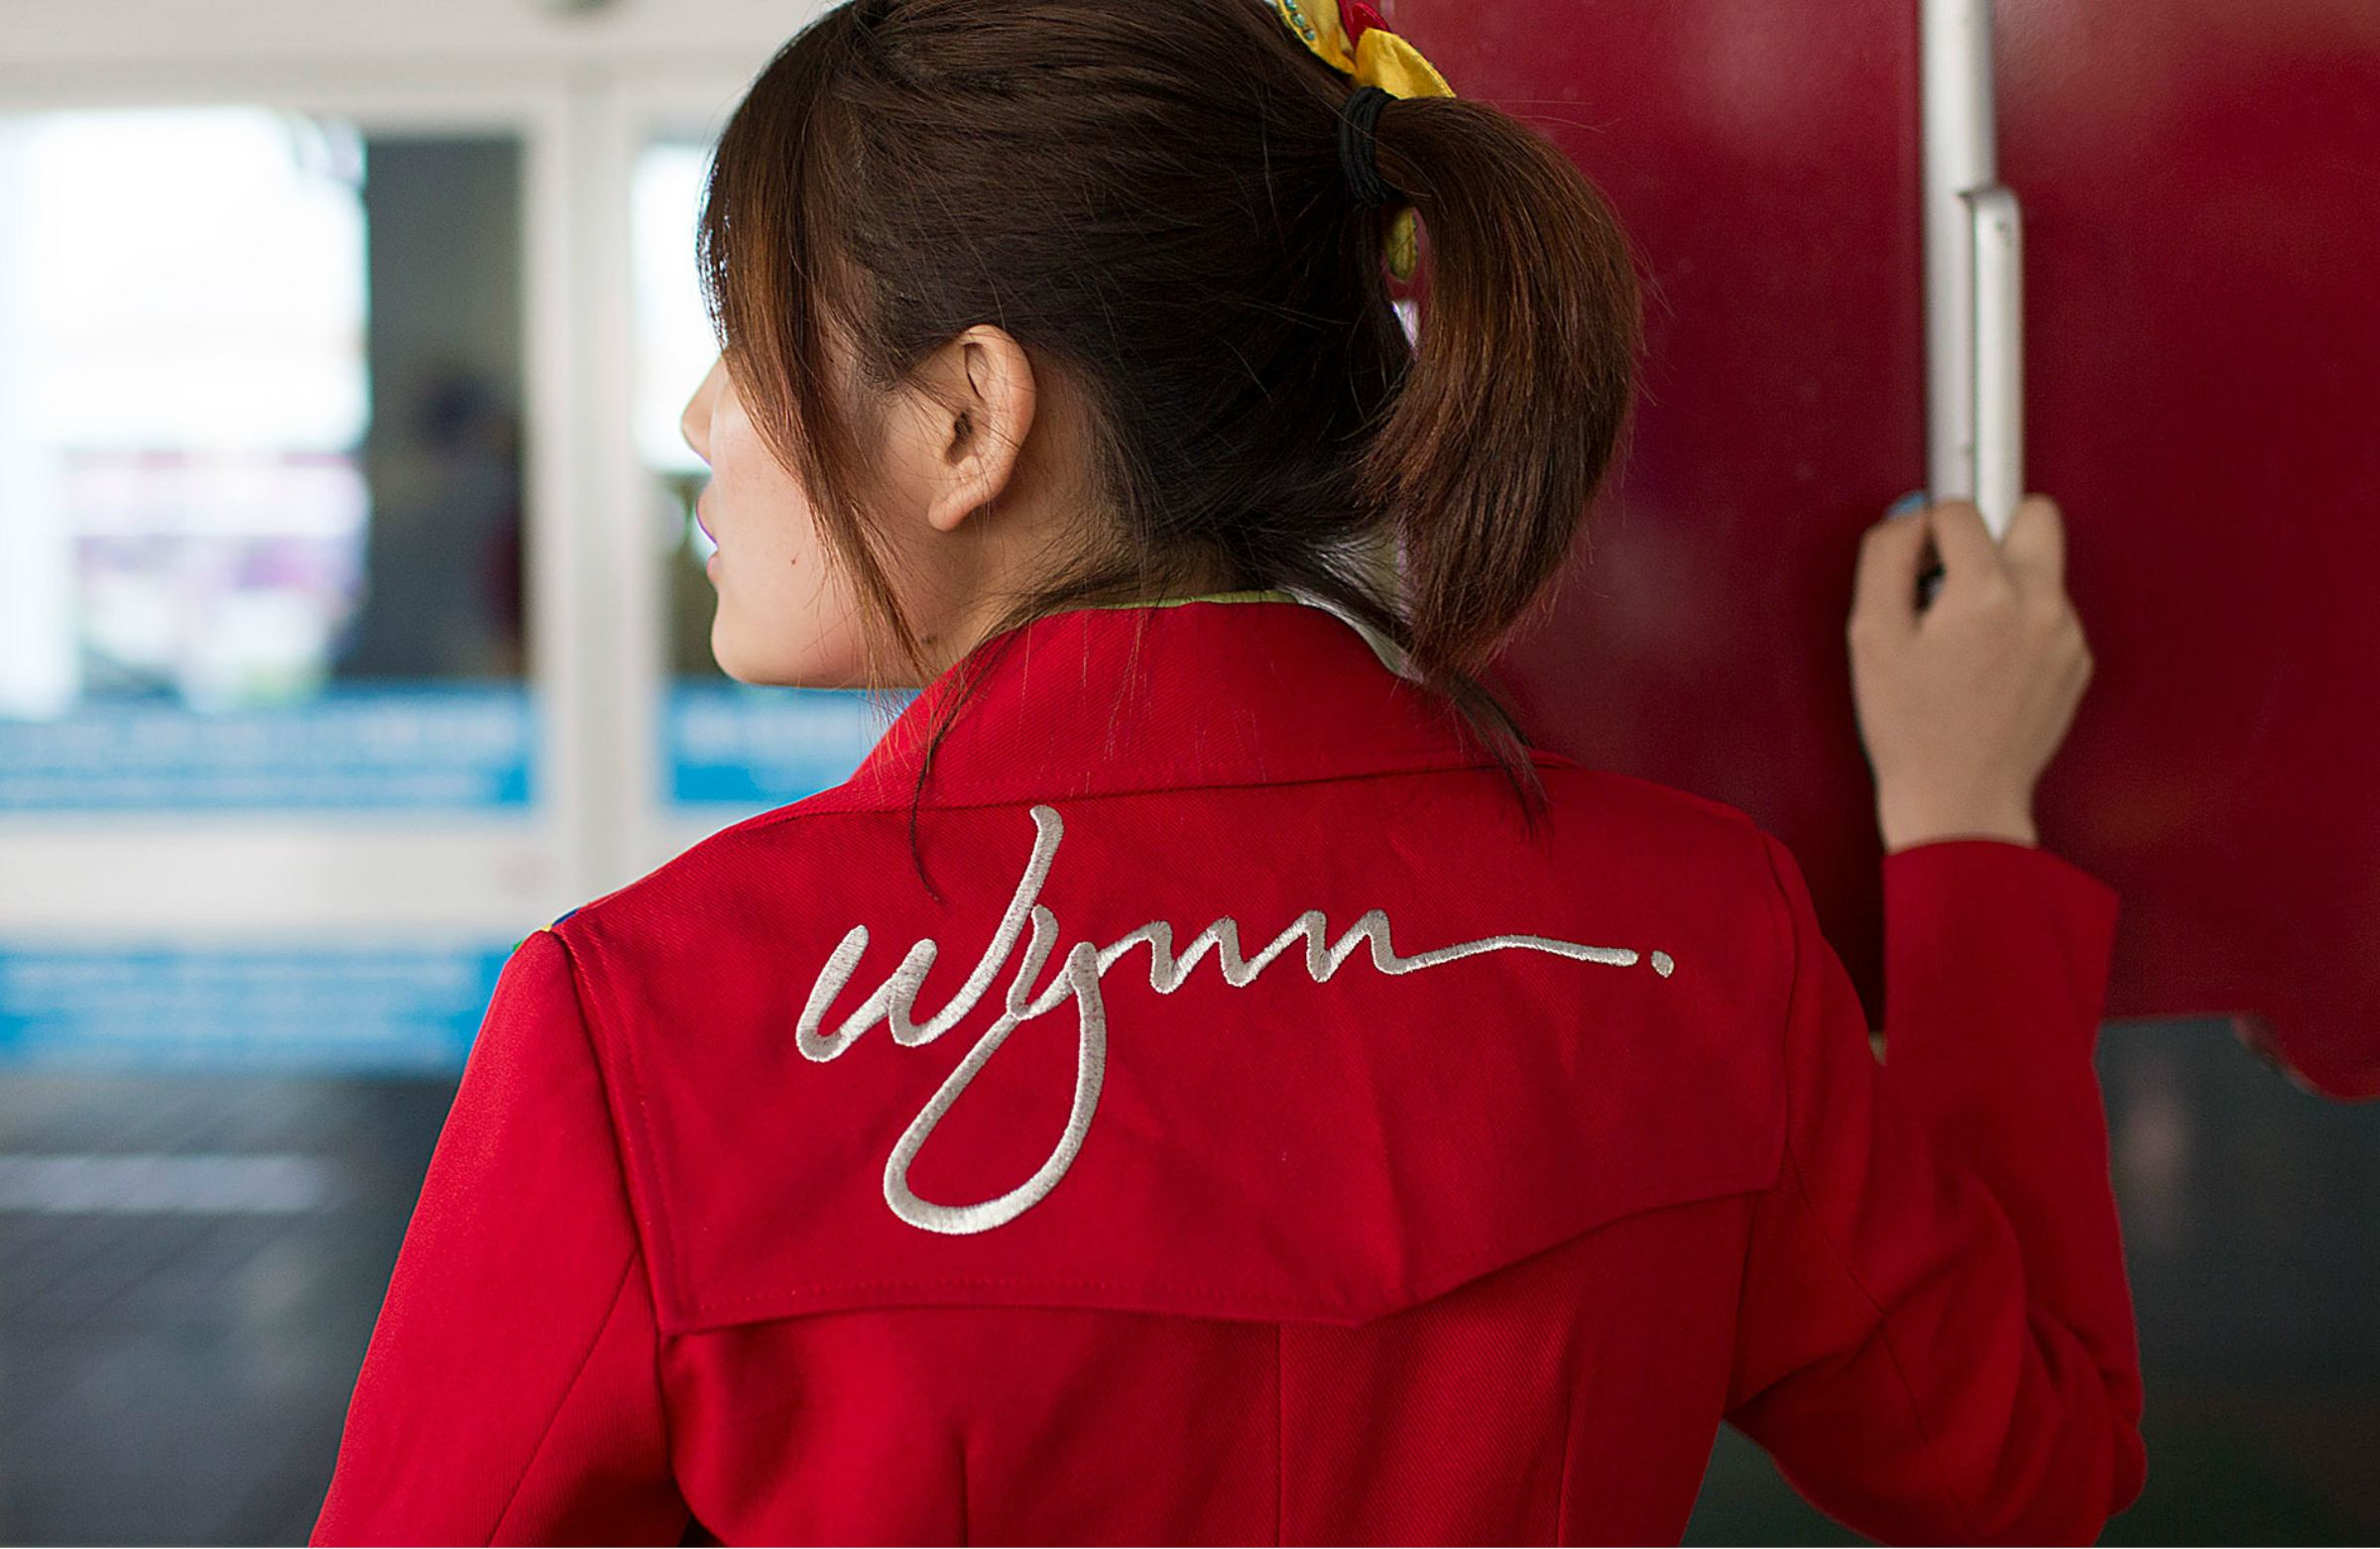 Wynn Macau careers benefits